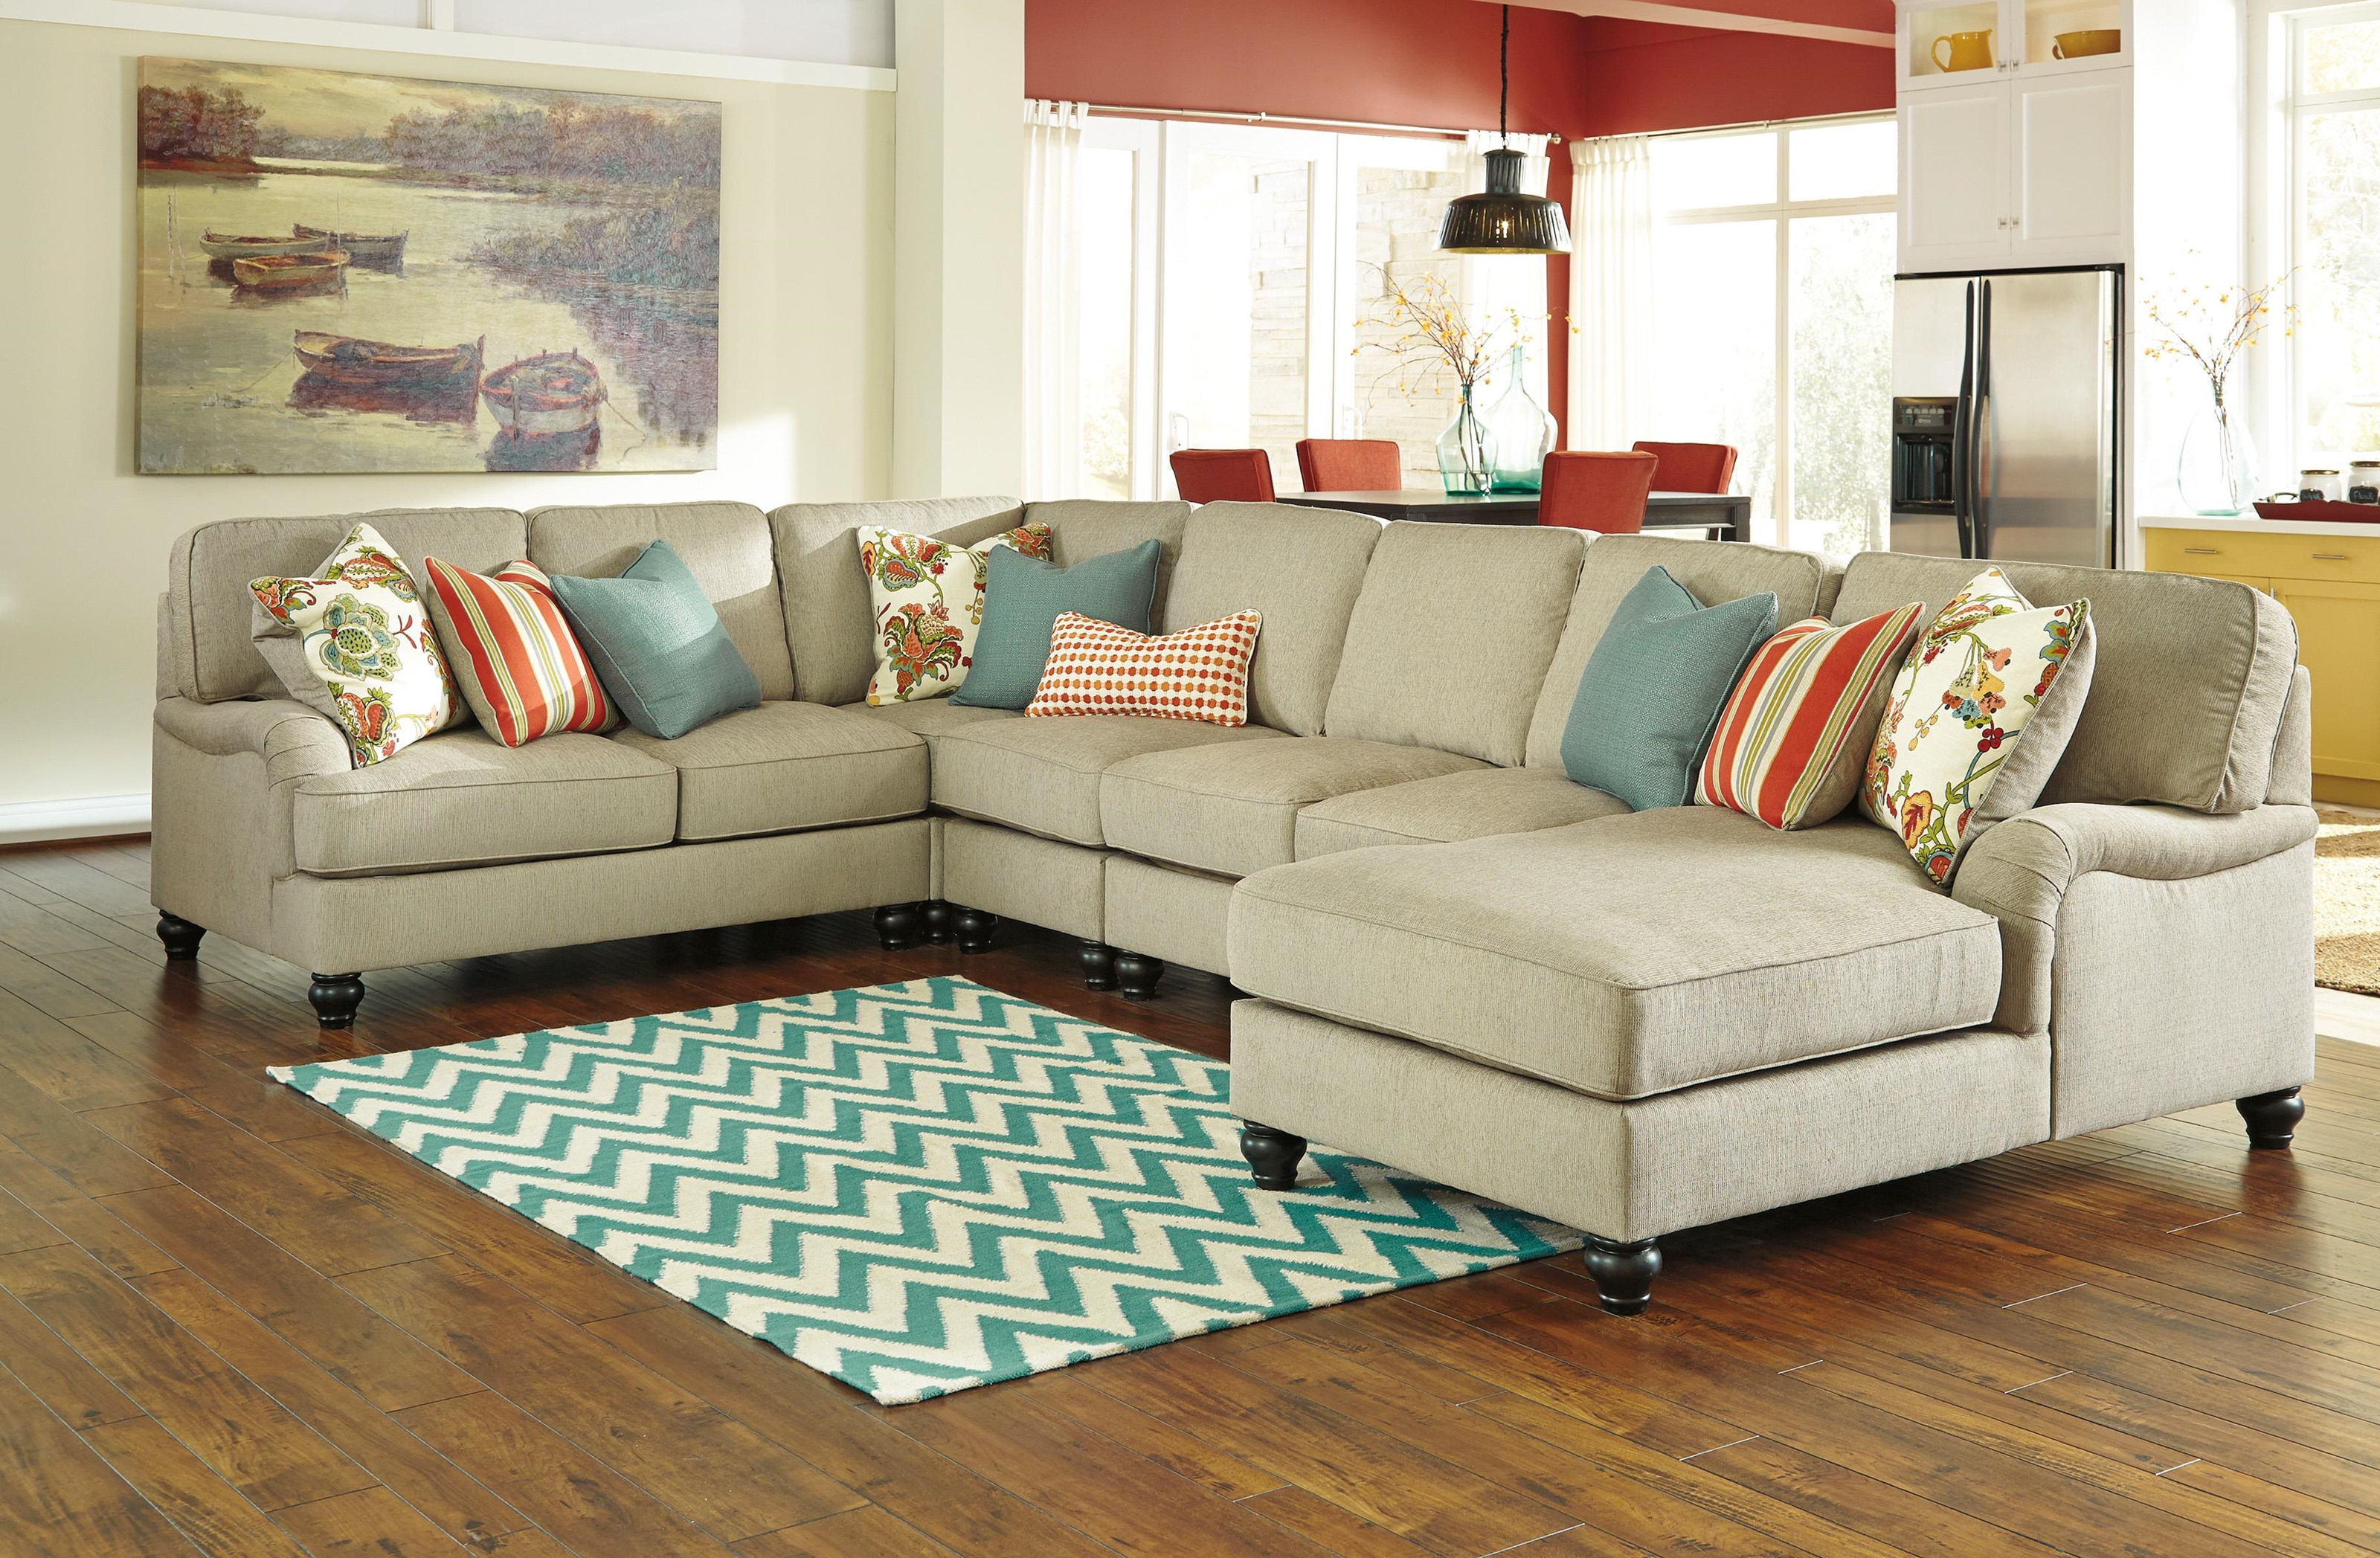 Signature Design by Ashley 2630077 4 Piece Chaise Sectional - Item Number: 5168598